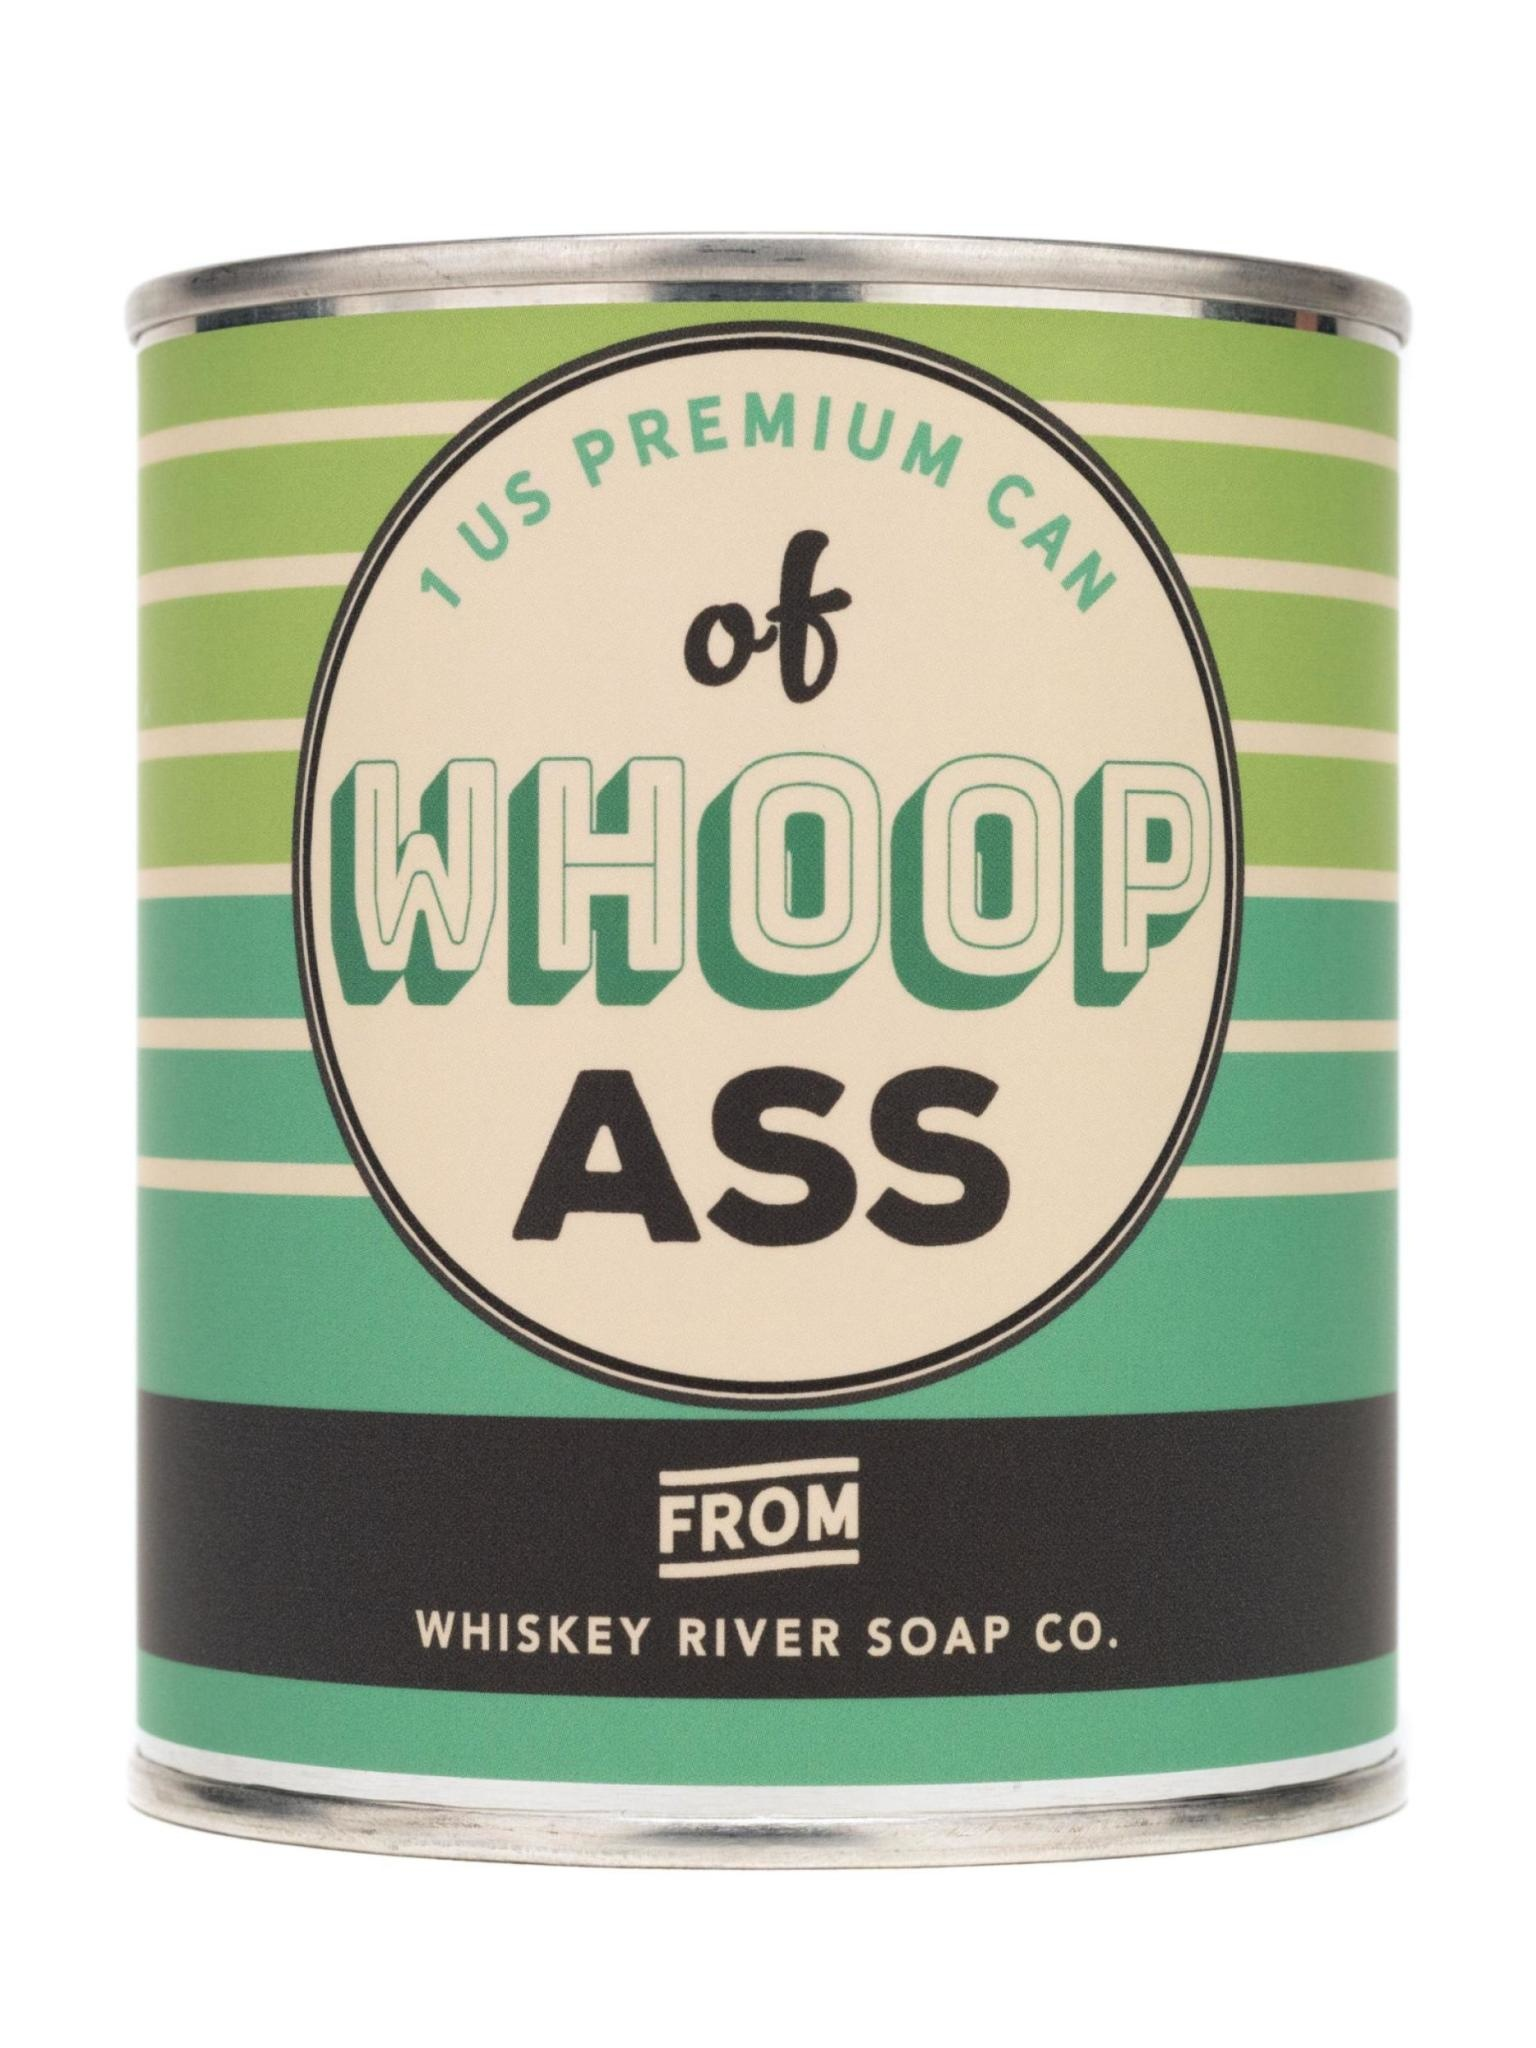 Whiskey River Soap Co. Whoop Ass Vintage Paint Can Candle